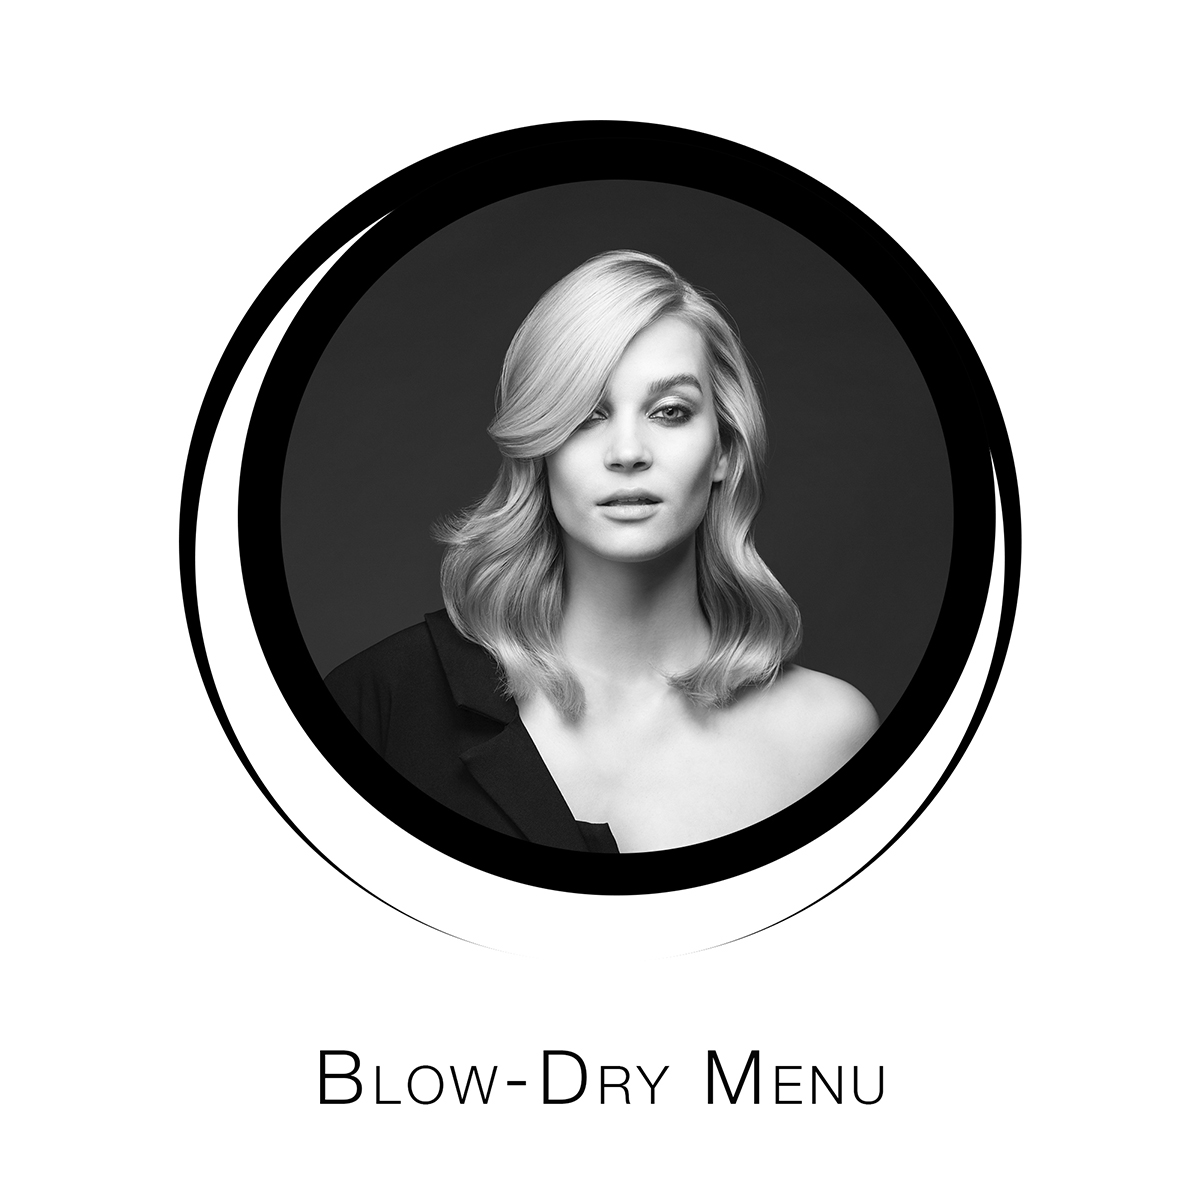 seanhanna services - blow-dry menu